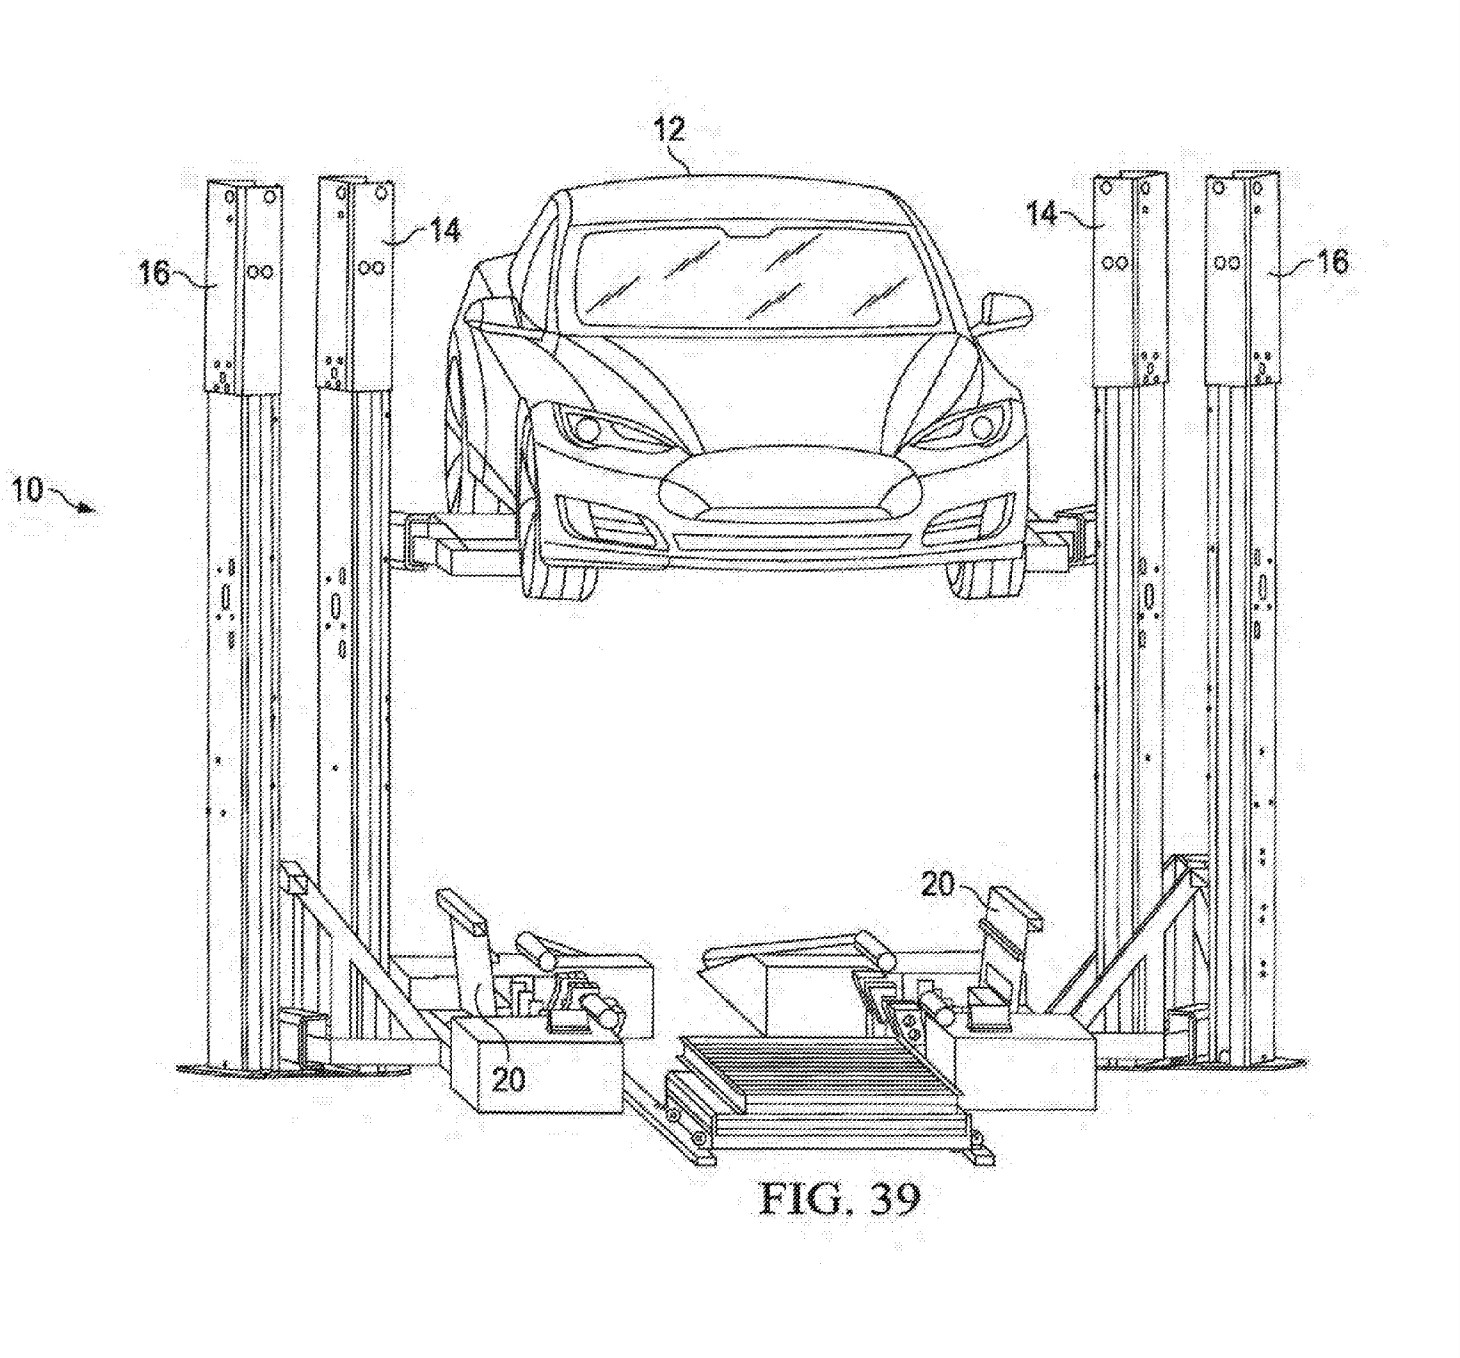 Electric Turbocharger Patents: Tesla Envisions Mobile EV Battery Swapping Machines